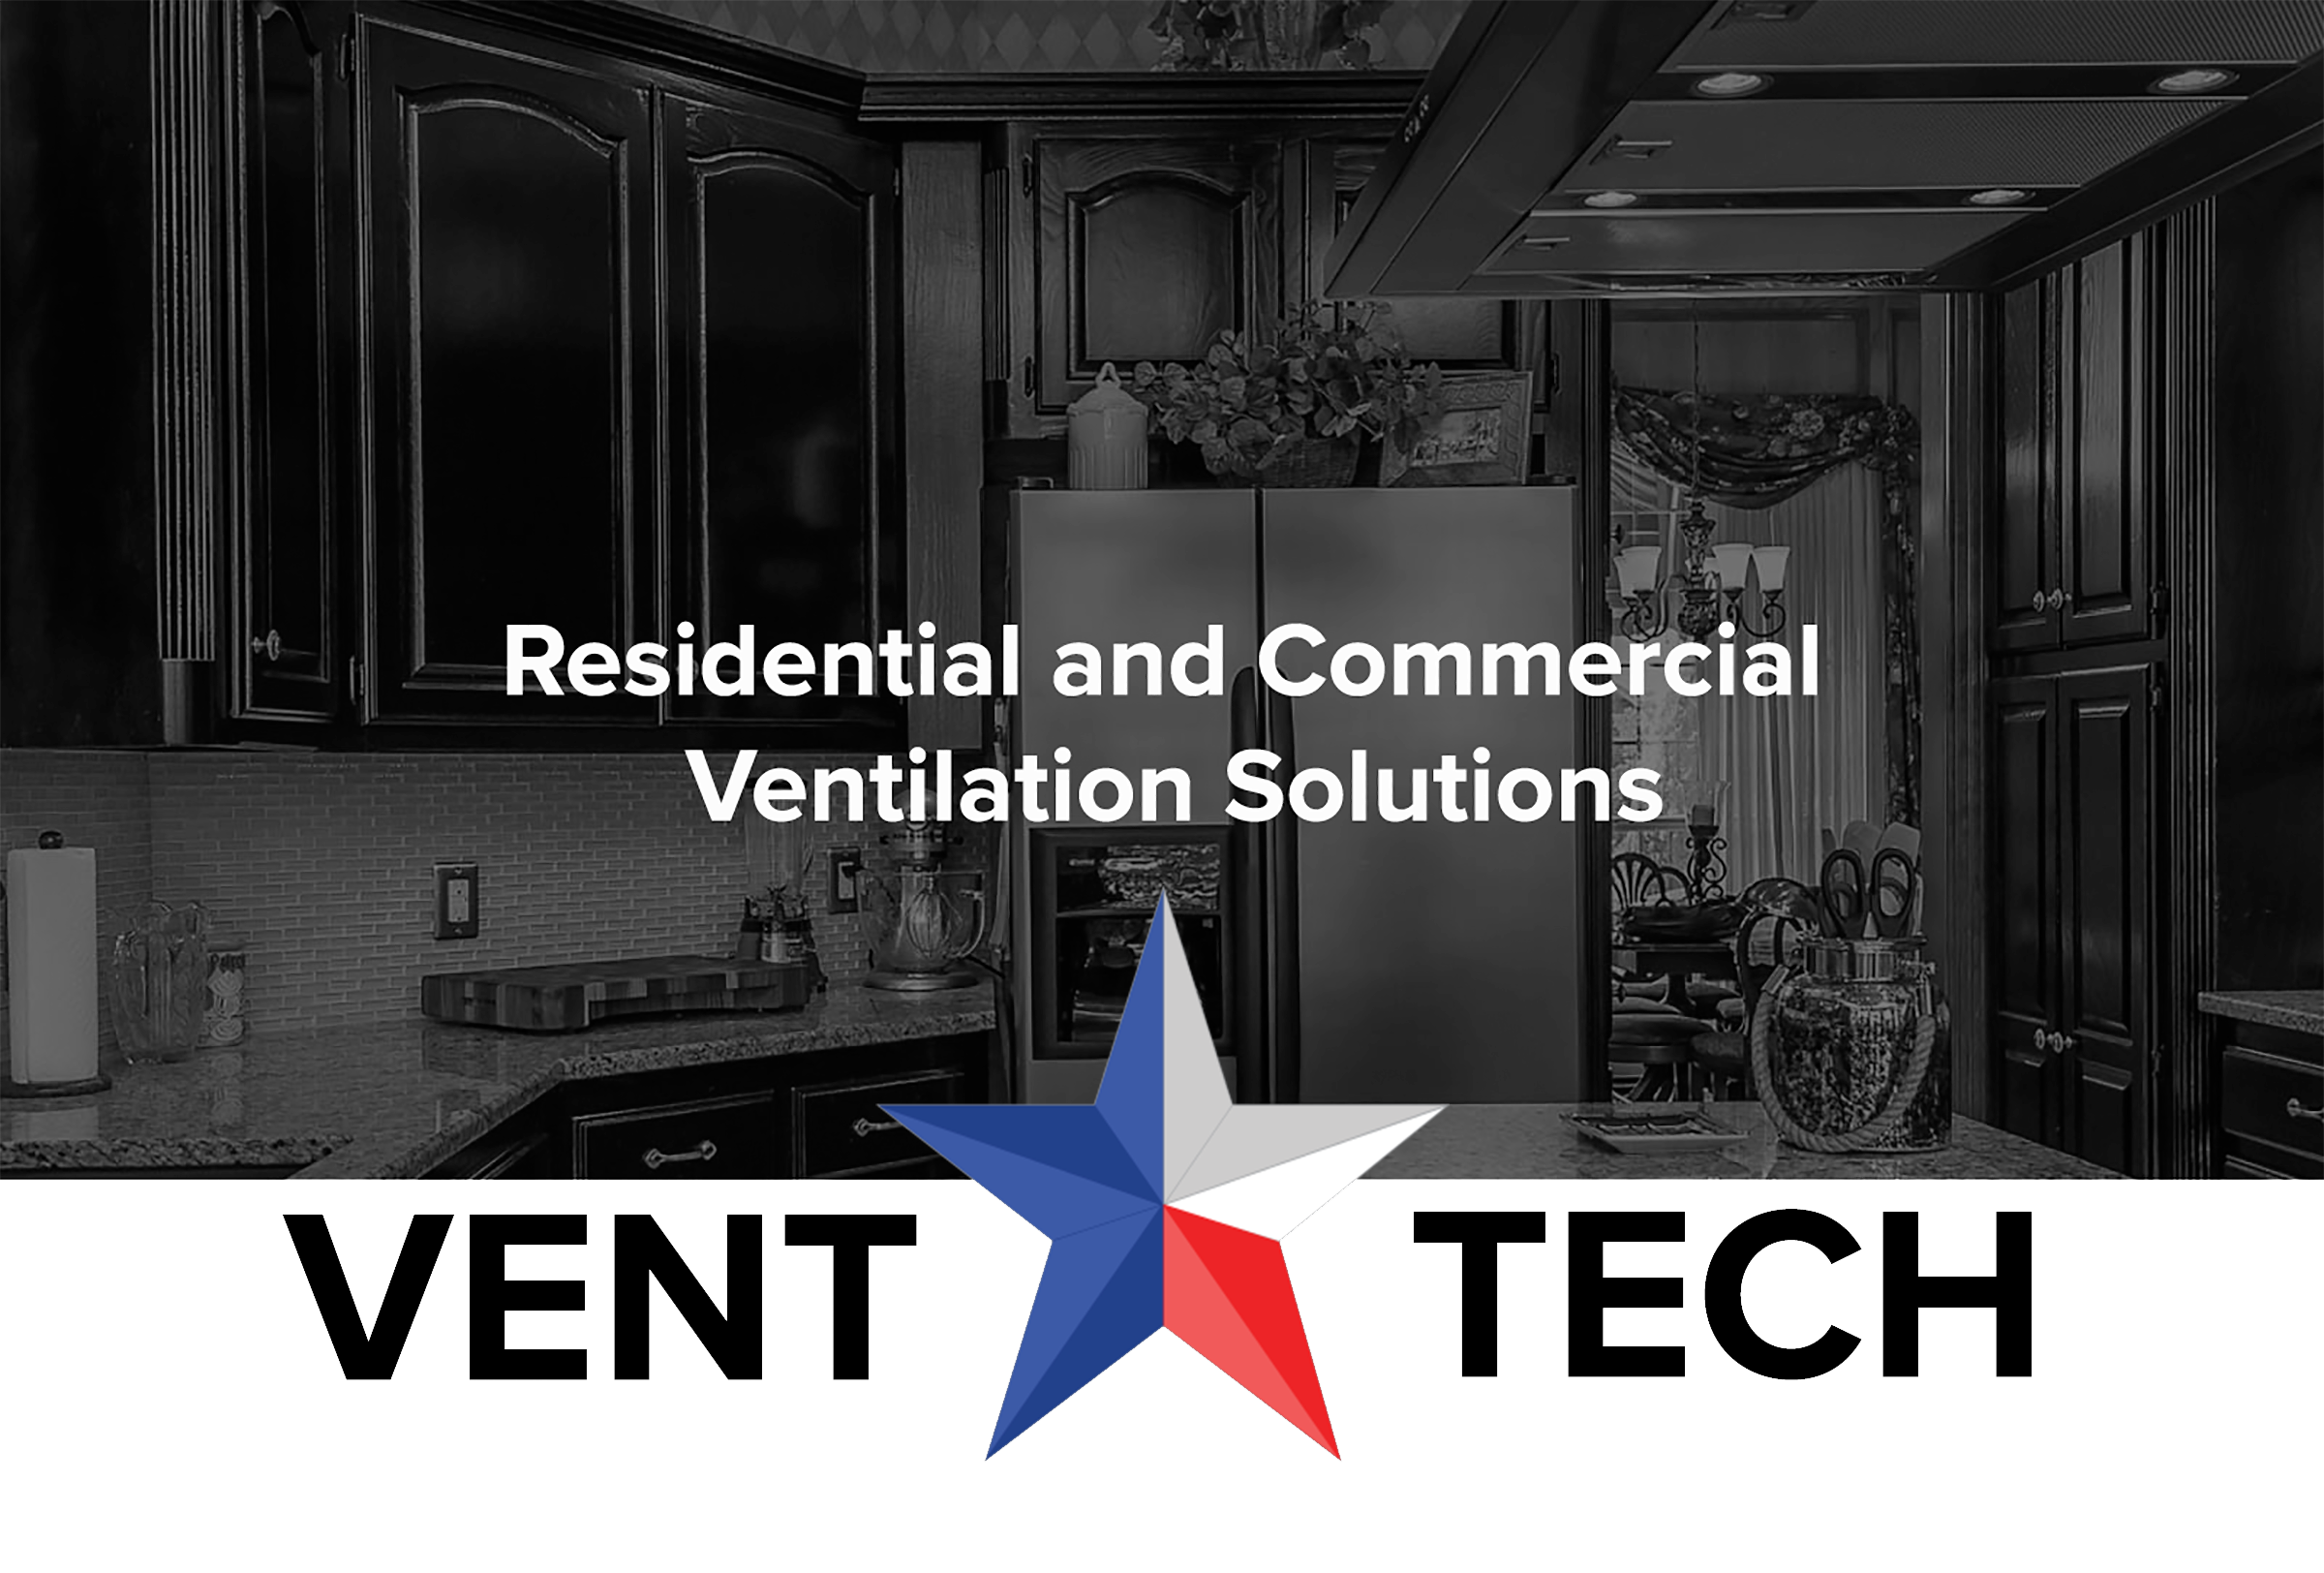 Residential and Commercial Ventilation Solutions